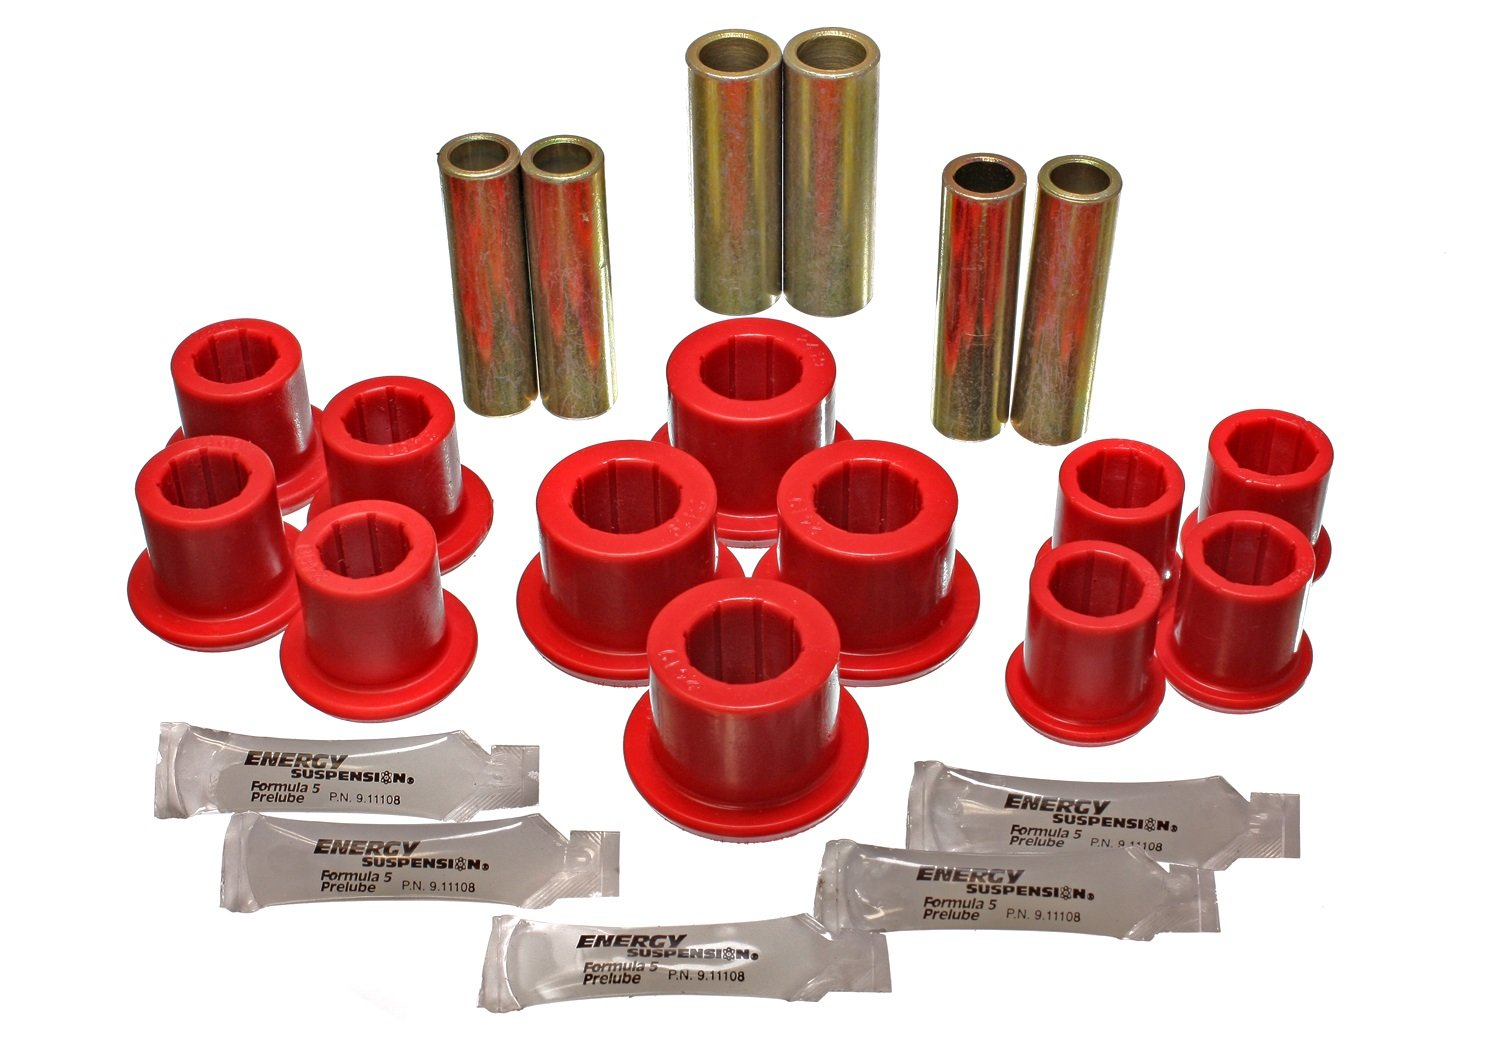 Energy Suspension 4.2150R Rear Spring Bushing for Ford